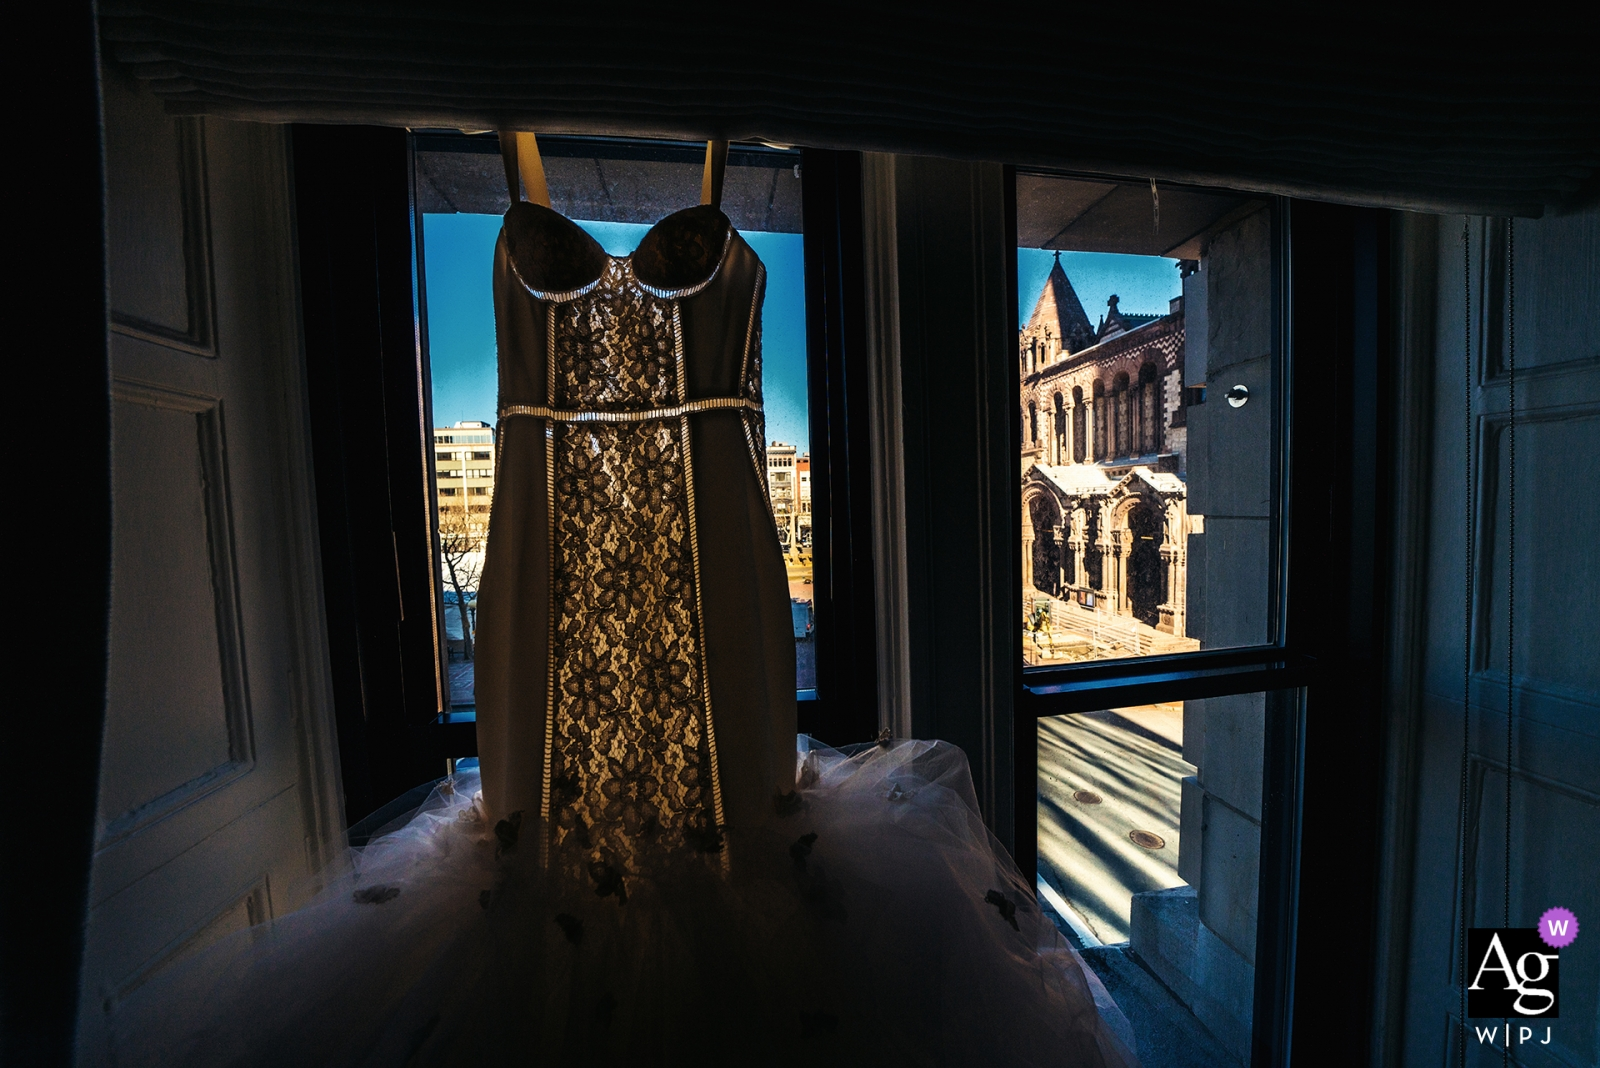 Fairmont Copley Plaza wedding photographer | wedding dress hanging in a window before the ceremony and reception